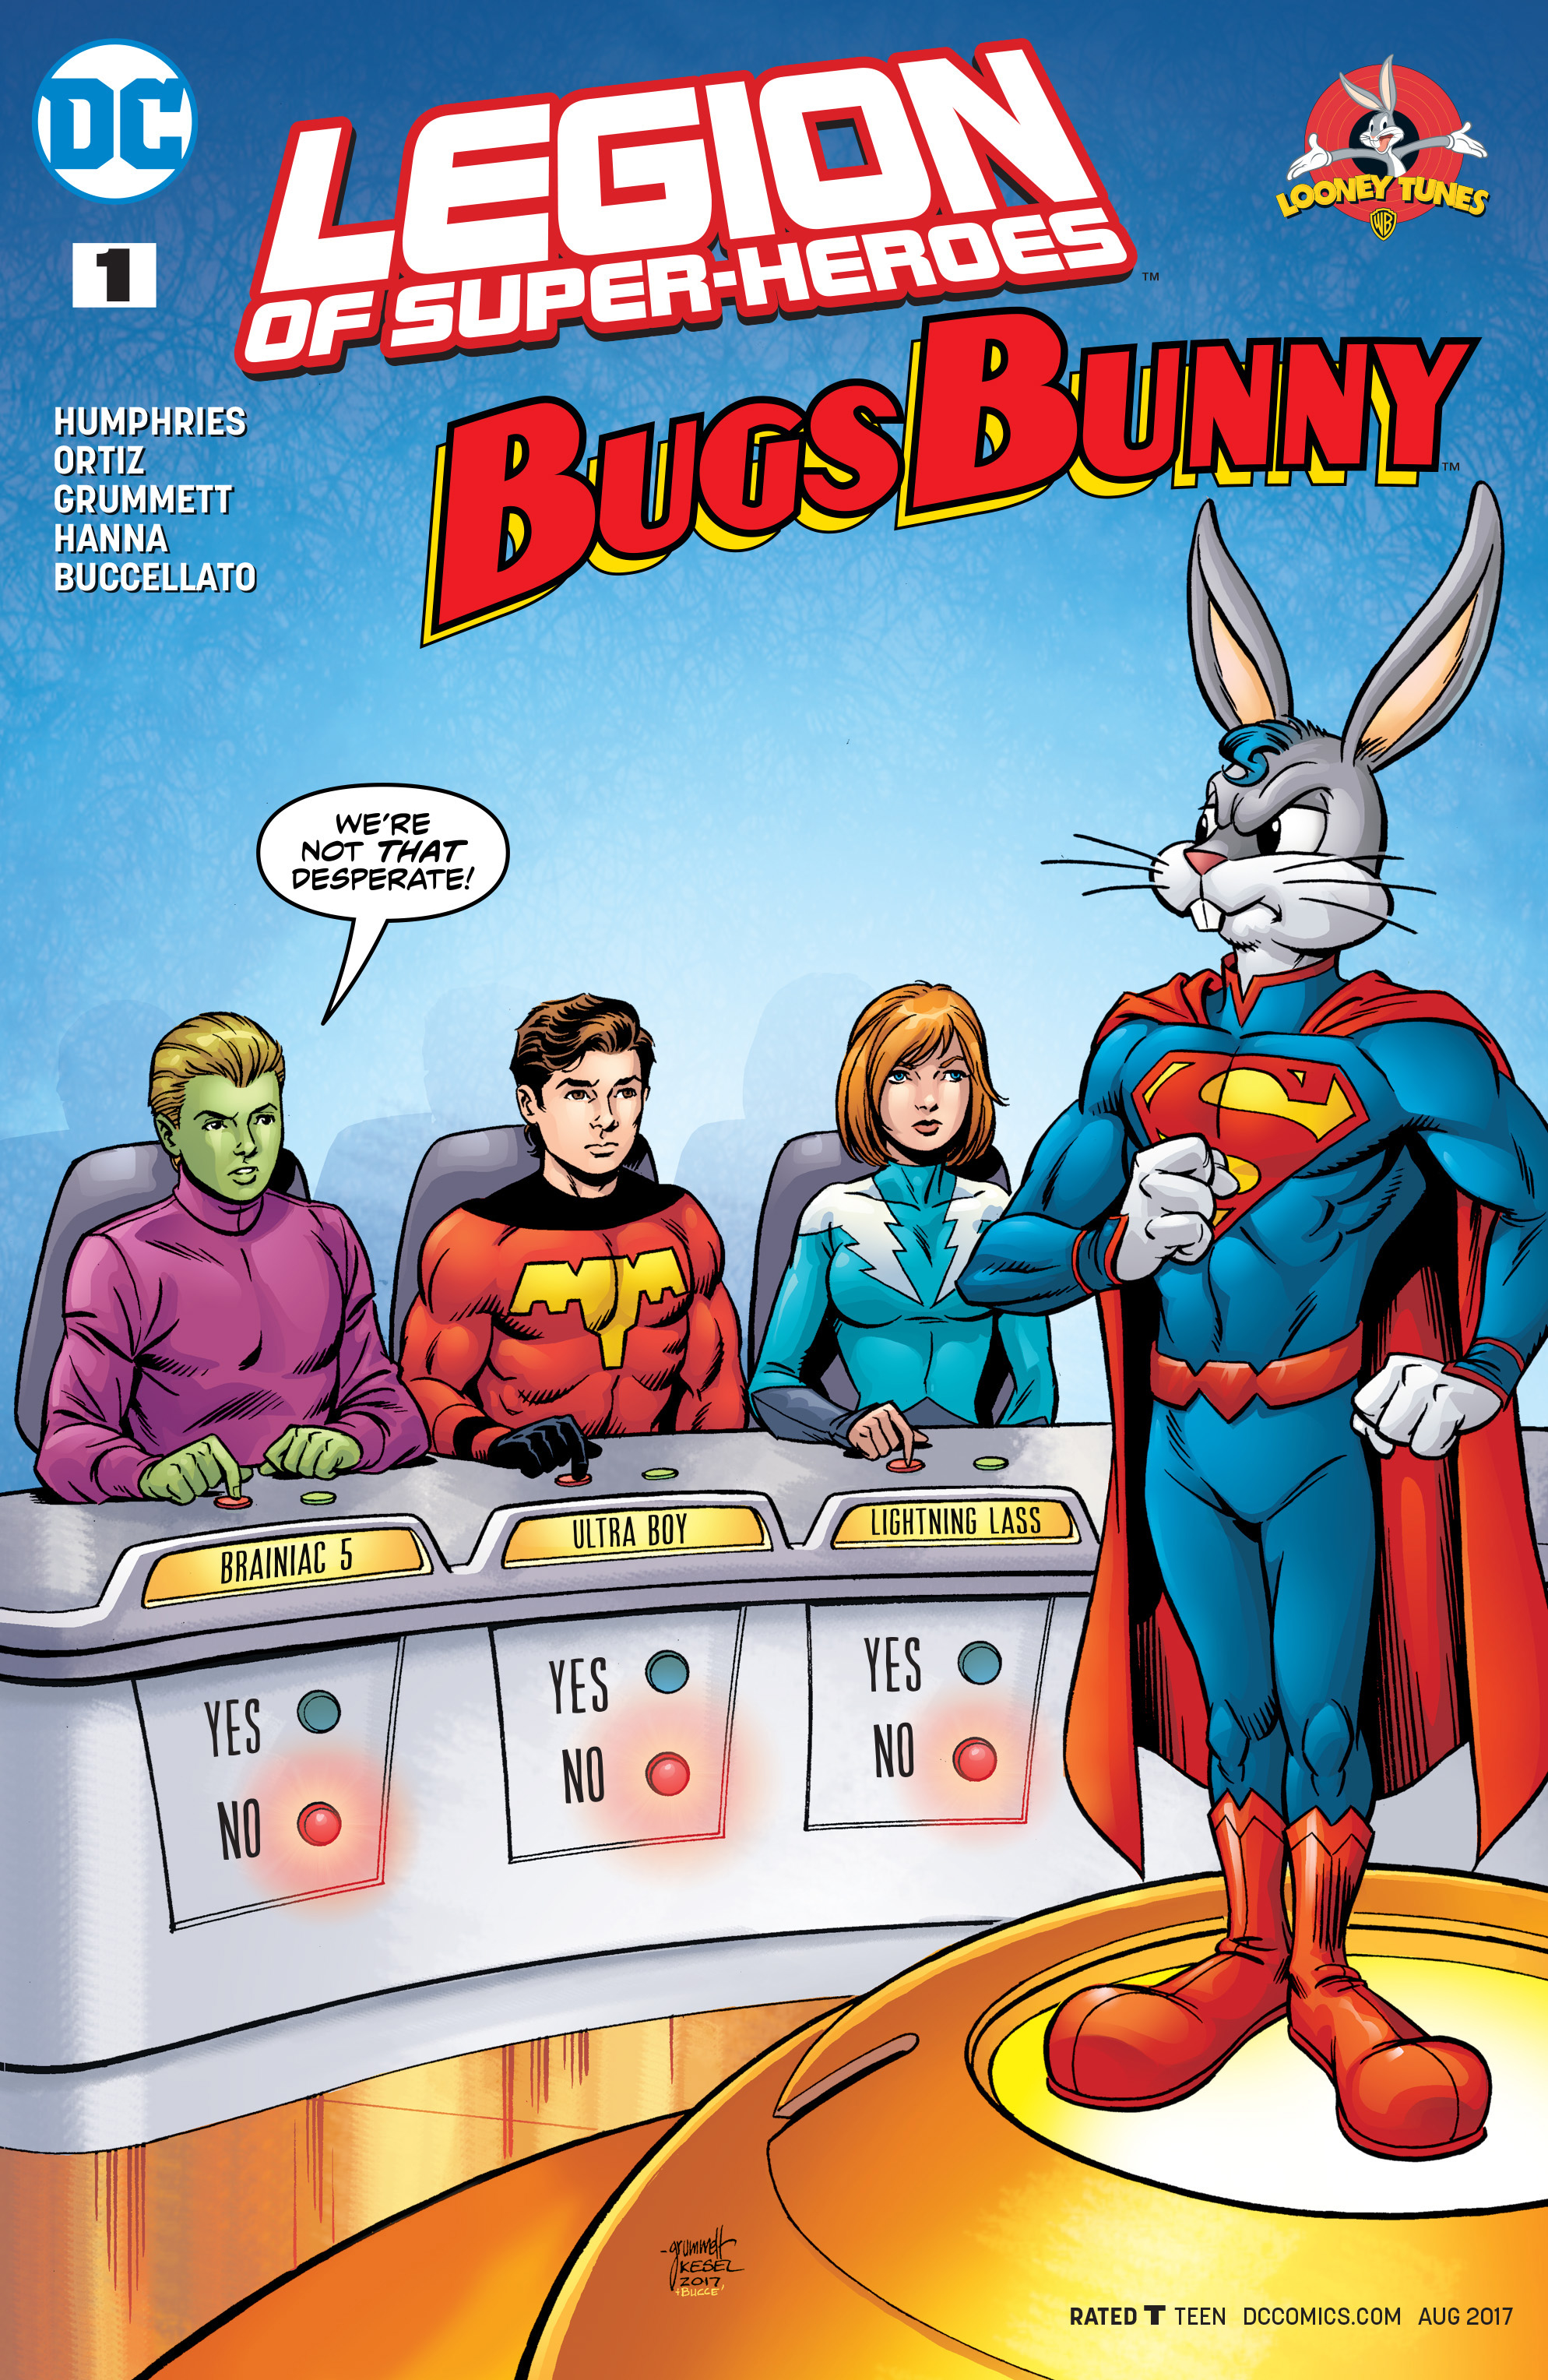 LEGION OF SUPER HEROES BUGS BUNNY SPECIAL #1